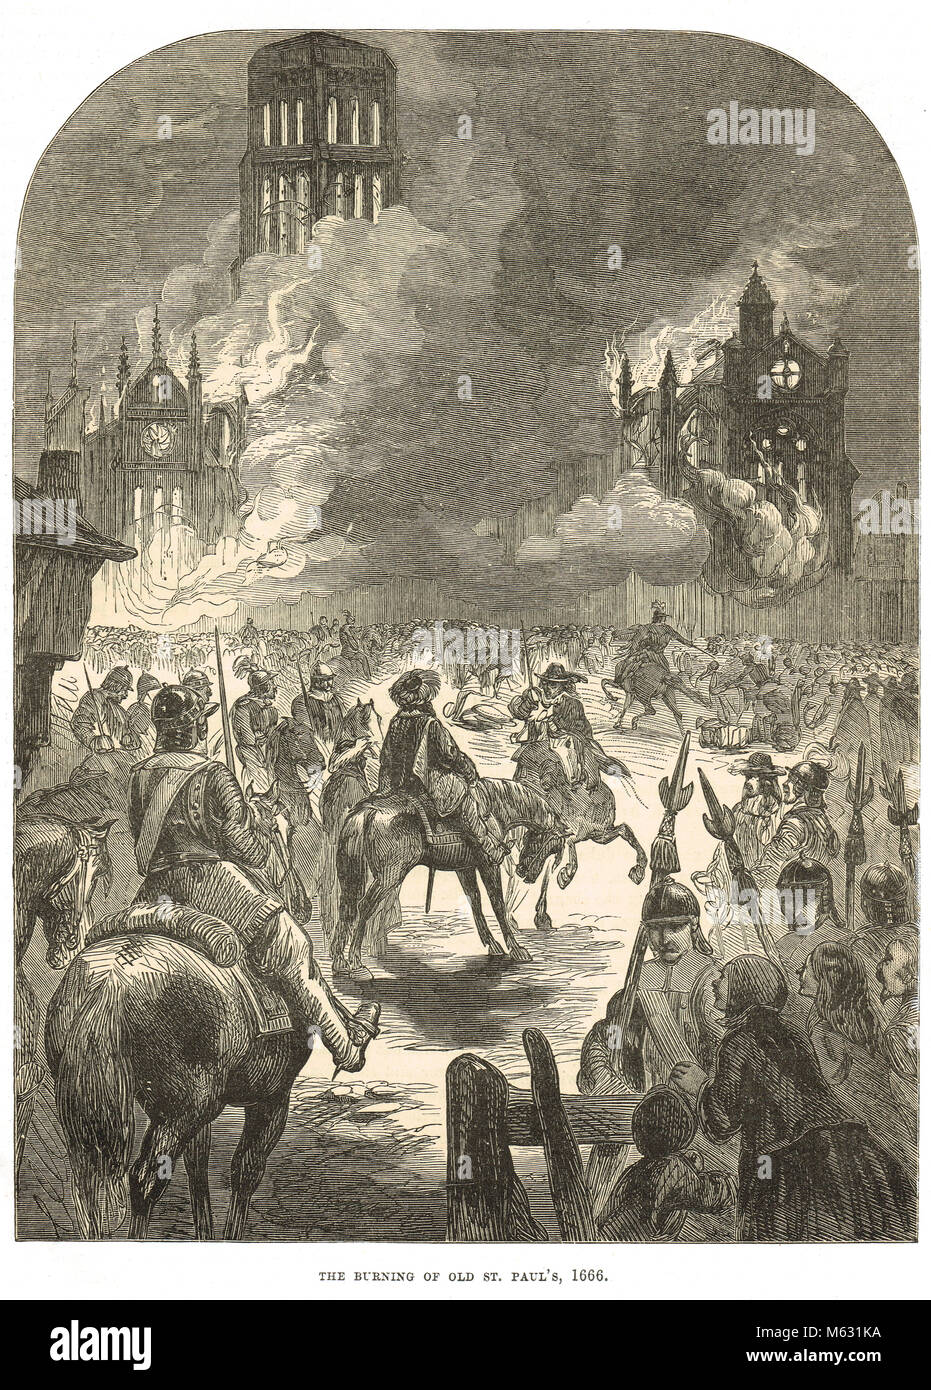 Old St Paul's Cathedral on fire, Great Fire of London, September 1666 - Stock Image